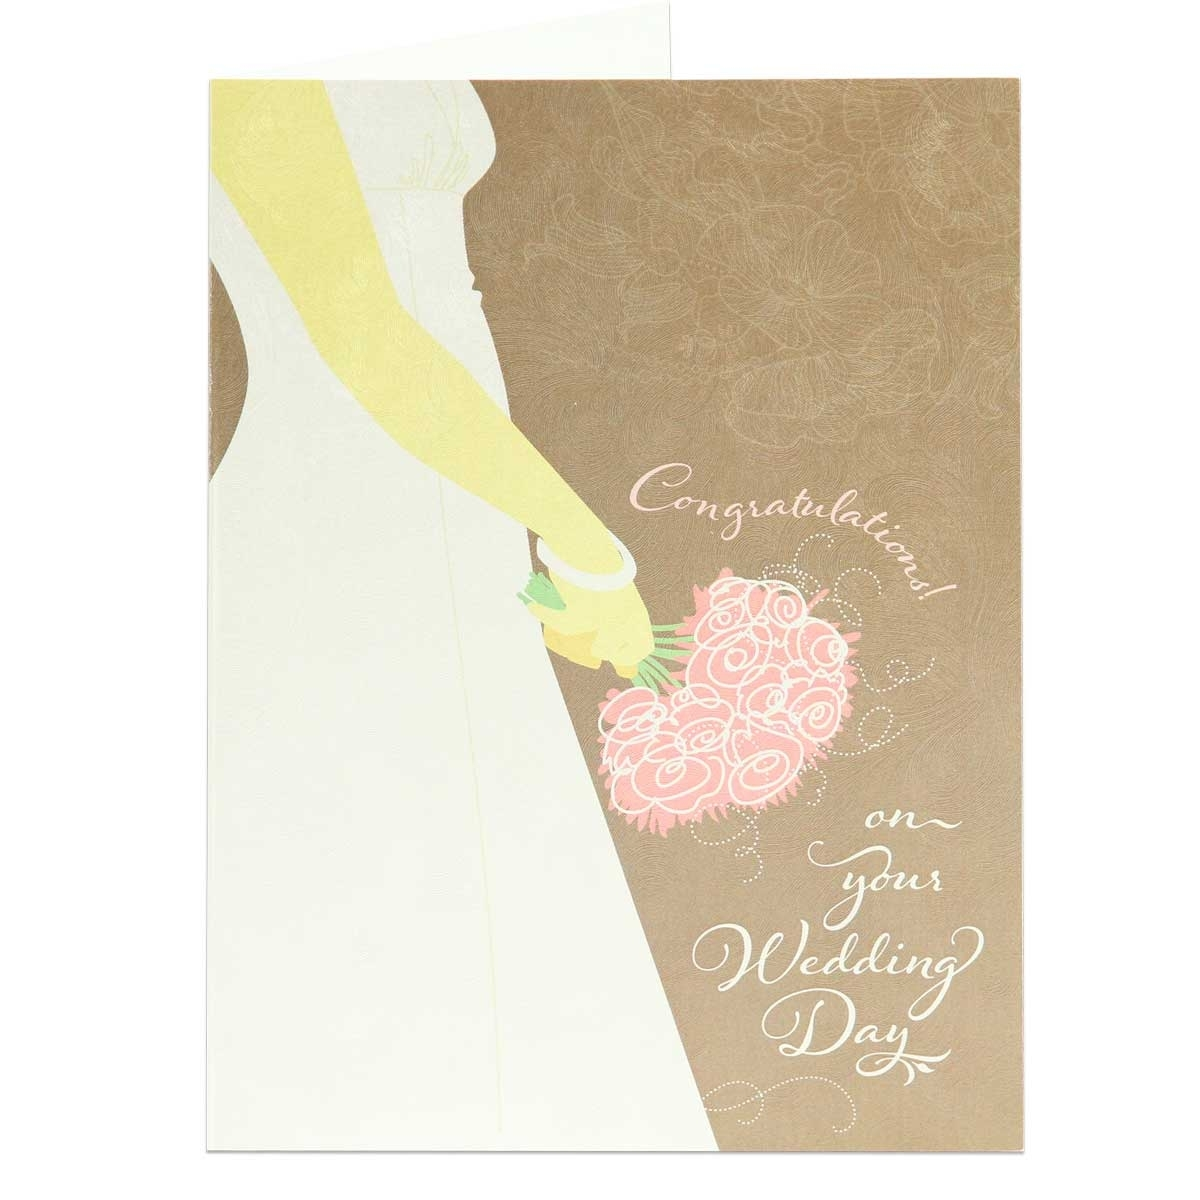 wedding greeting card biblical wedding congratulations - Wedding Greeting Cards